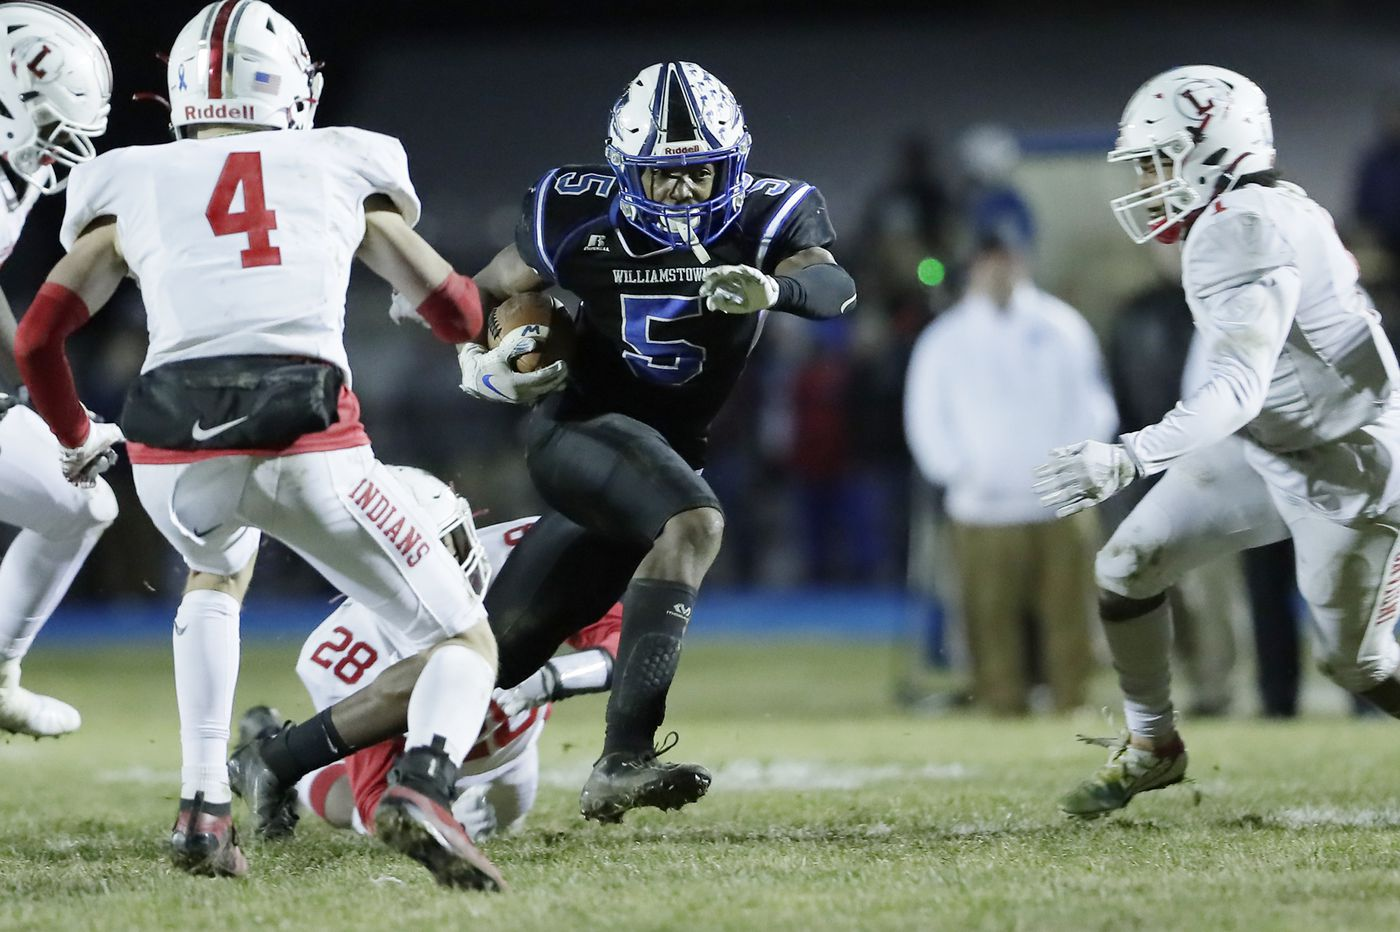 Williamstown rallies in second half to beat Lenape, claim South Jersey Group 5 title